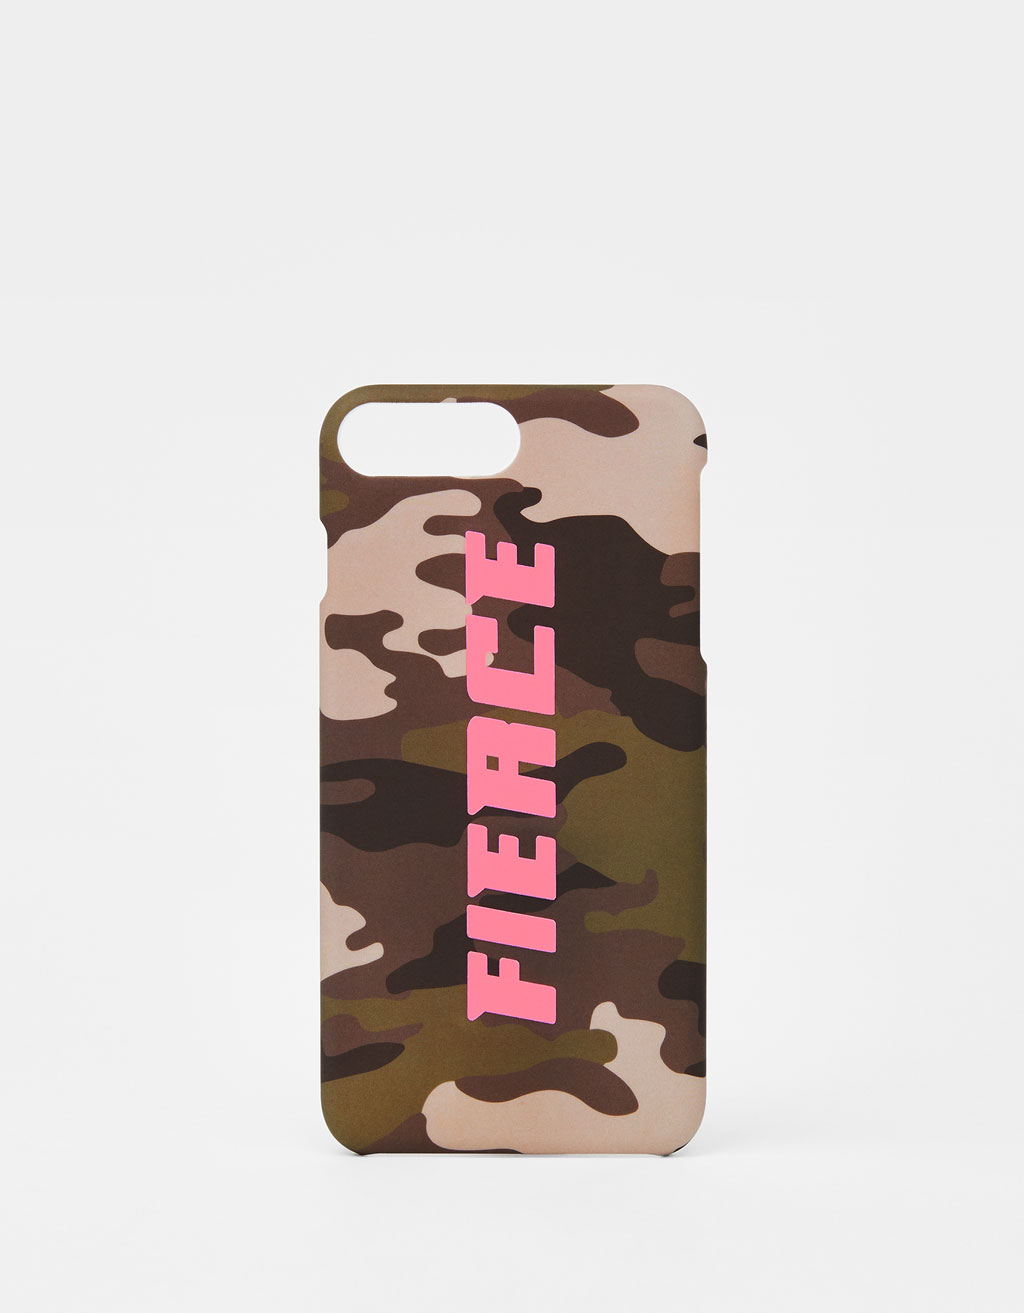 Camouflage iPhone 6 Plus / 7 Plus / 8 Plus case